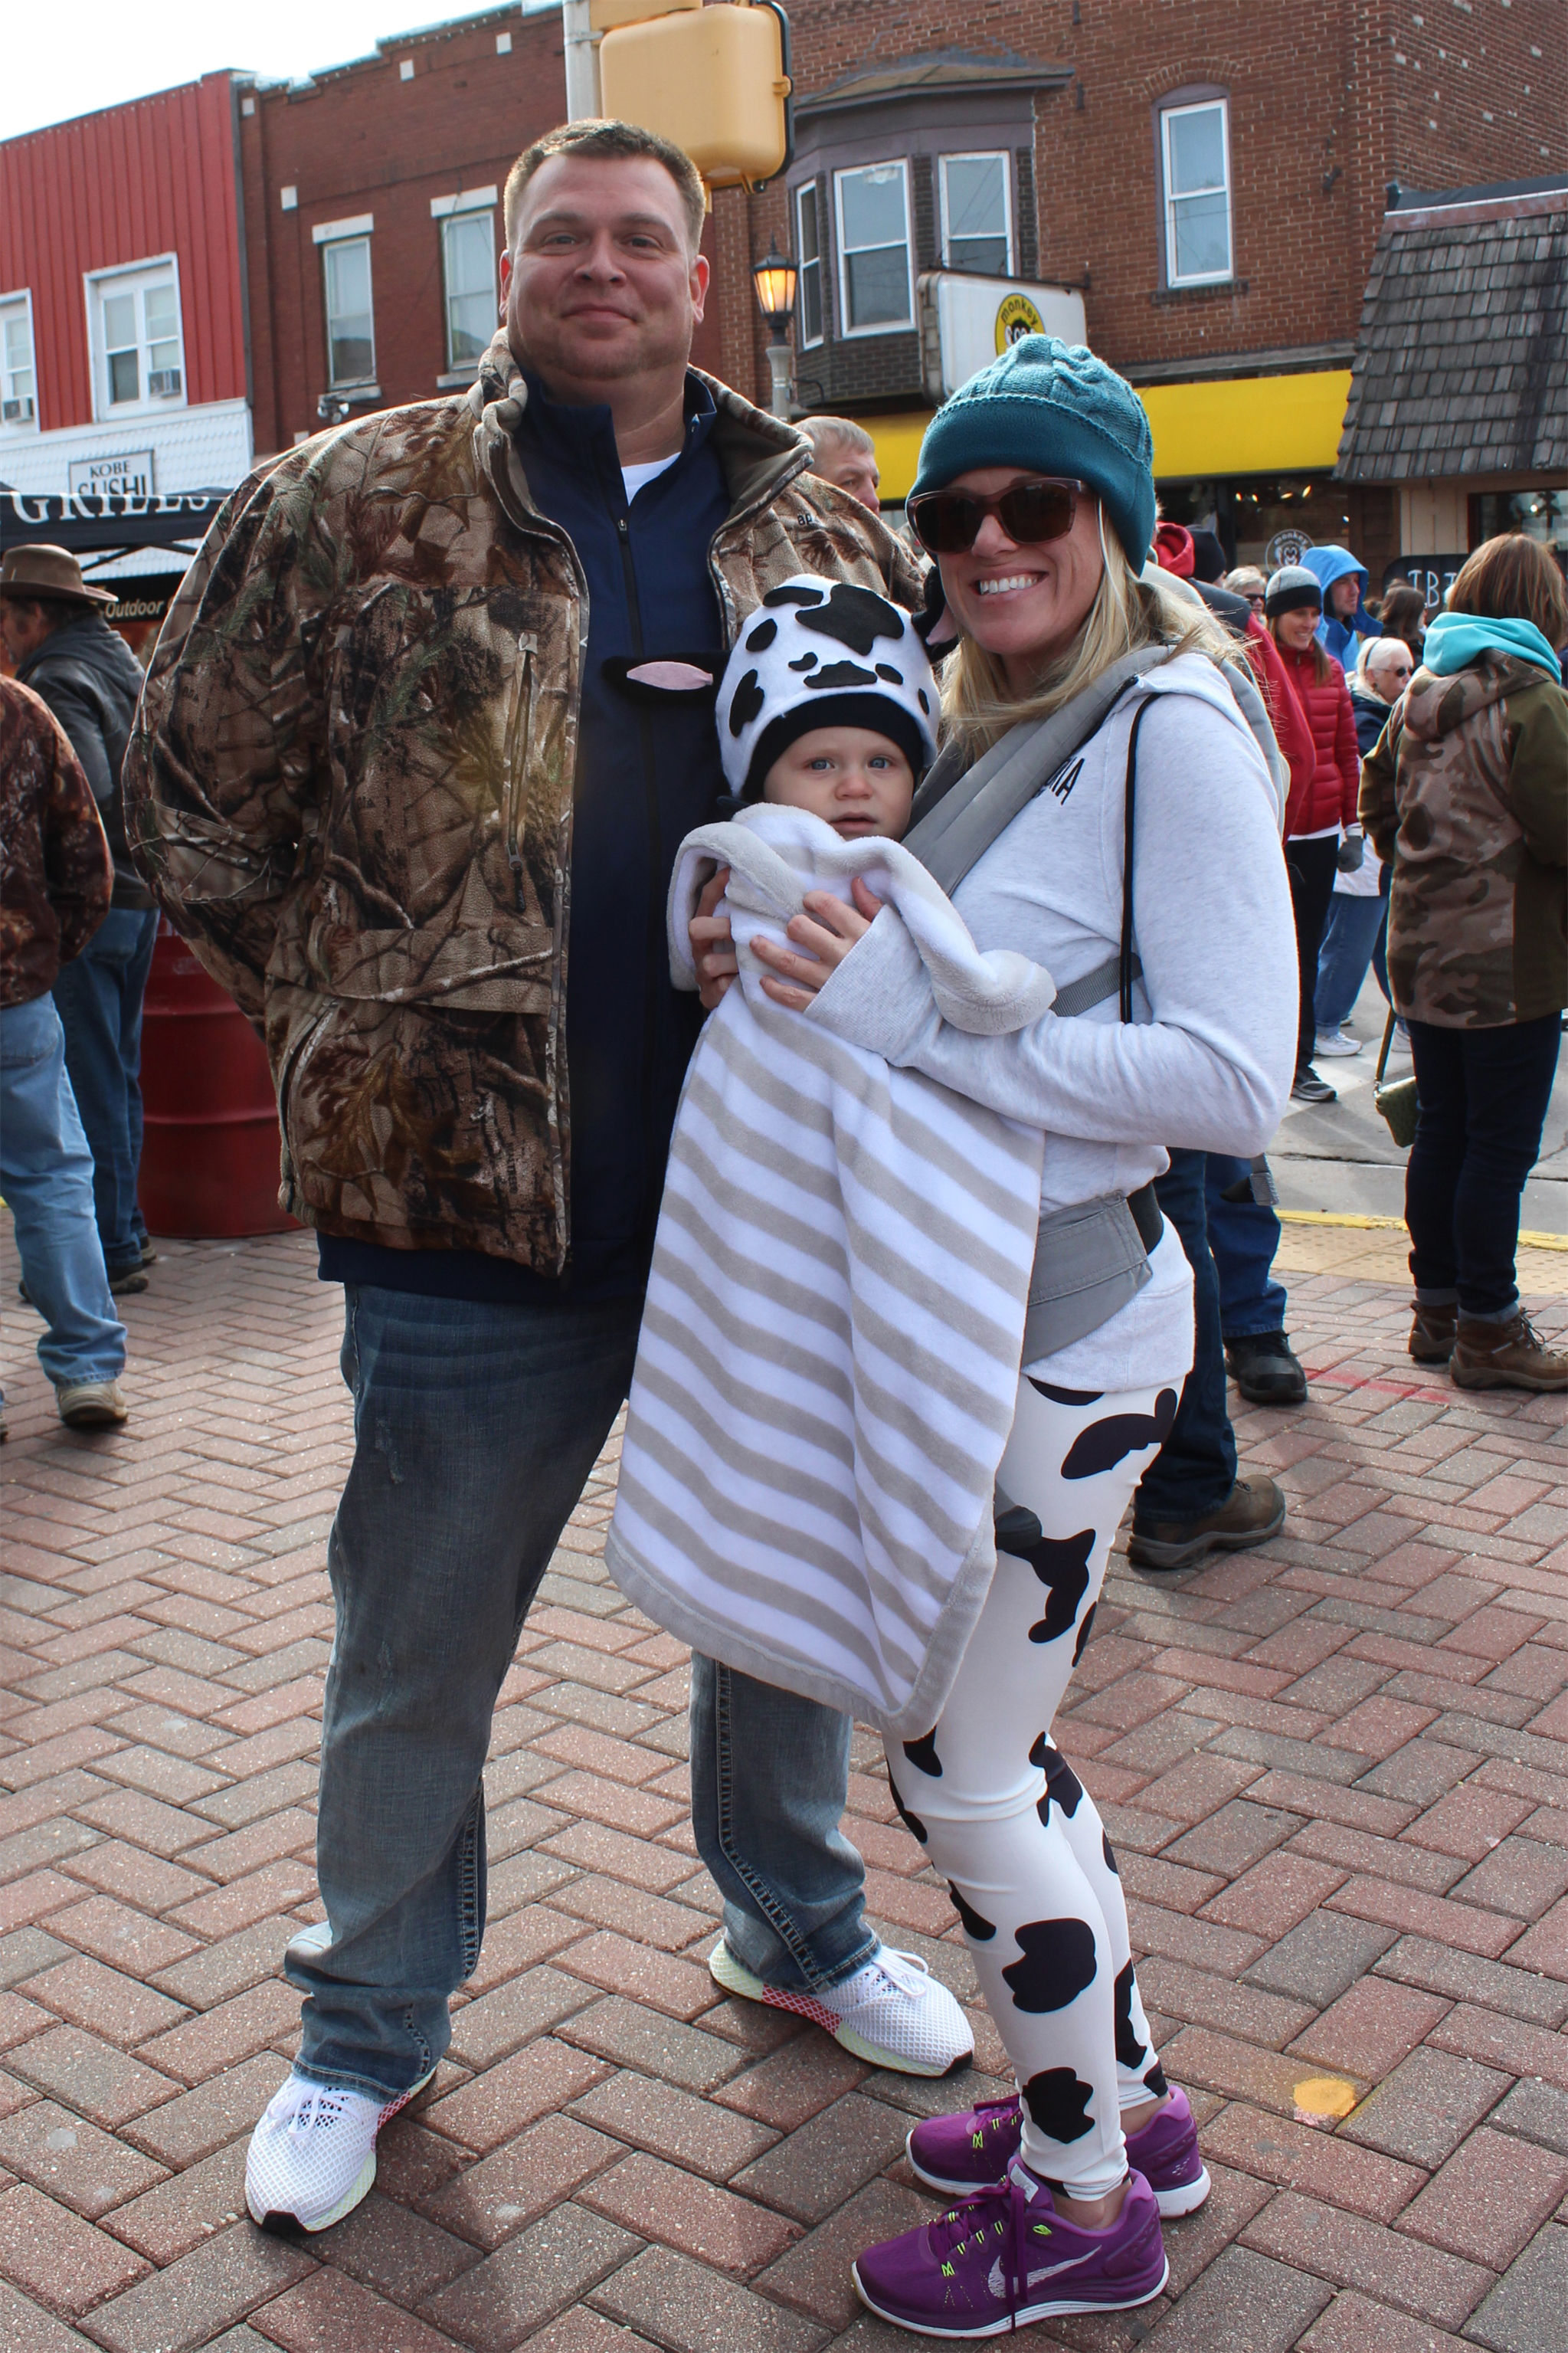 Even this little one is dressed up for Beef-A-Rama. Kim Johnson photo